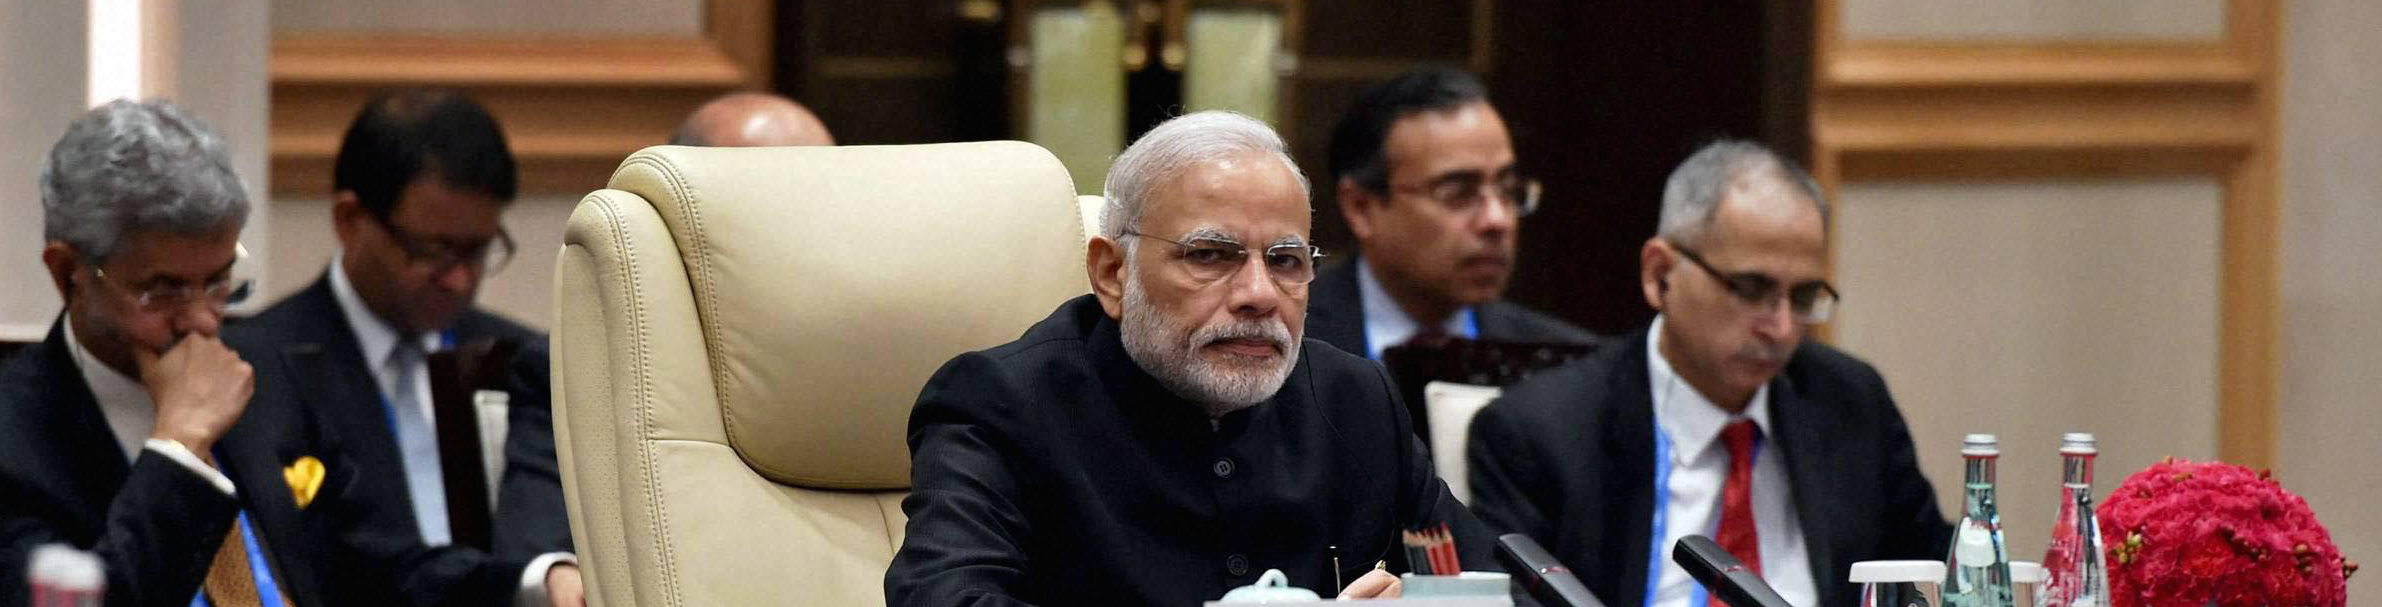 Why Modi Skipping the Non-Aligned Summit Is a Strategic Miss for India